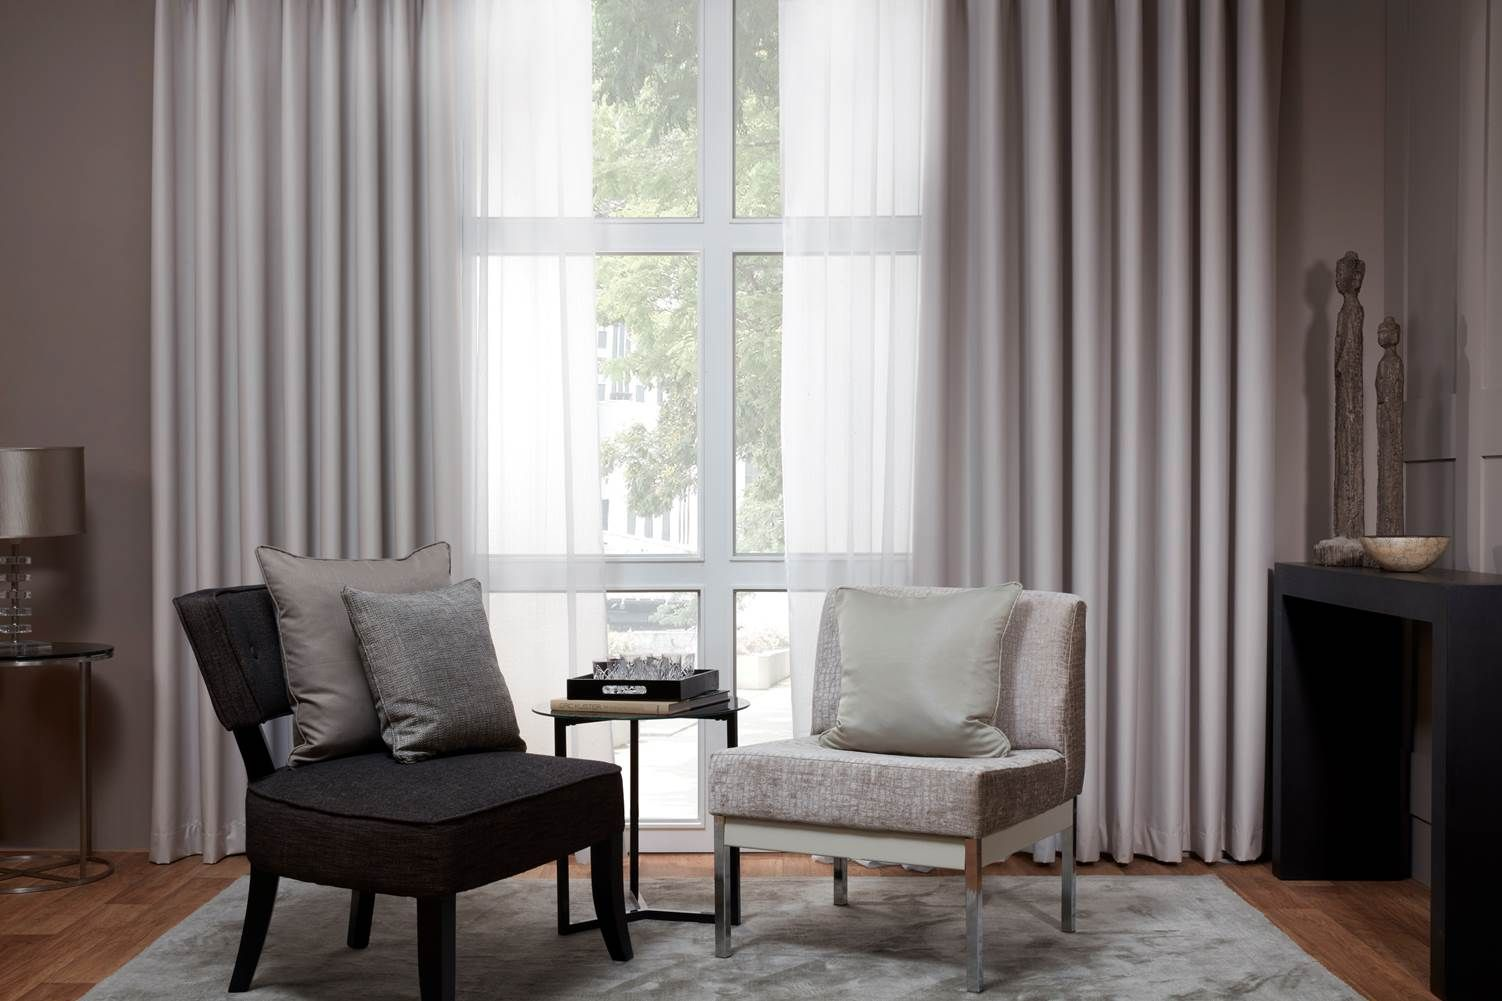 94 Inch Blackout Curtains Best Blackout Curtains Top Brands And Buying Guide For 2019